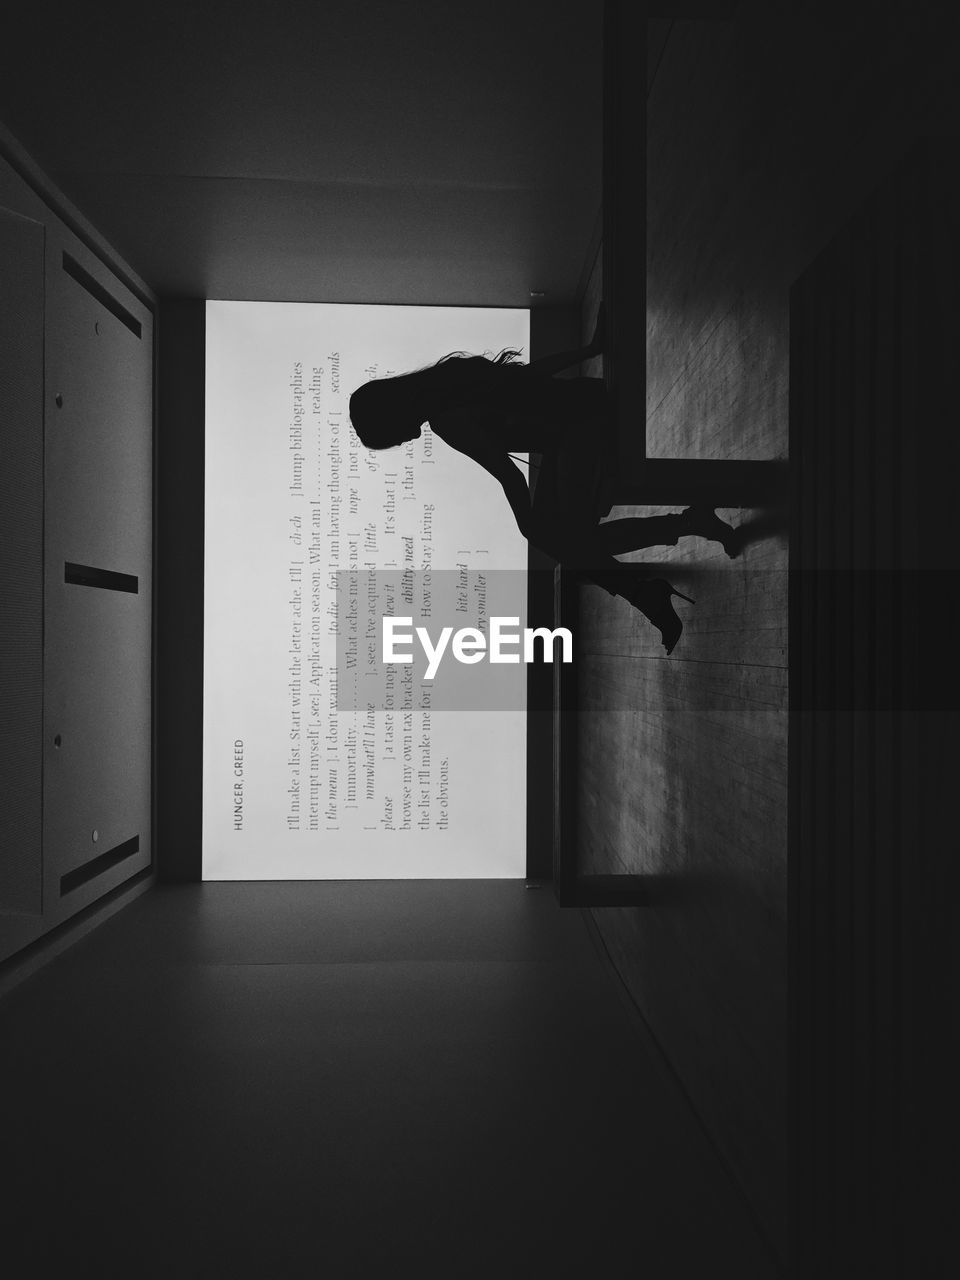 Sillouete Sillouette Eyem Best Shots EyEmNewHere Blackandwhite Art Vscocam VSCO Portrait Moody Lifestyles Art Arts Culture And Entertainment VSCO Vscocam Blackandwhite Domestic Room Home Interior Door Shadow Silhouette Outline Focus On Shadow 10 The Still Life Photographer - 2018 EyeEm Awards The Portraitist - 2018 EyeEm Awards The Creative - 2018 EyeEm Awards EyeEmNewHere The Photojournalist - 2018 EyeEm Awards The Street Photographer - 2018 EyeEm Awards My Best Photo